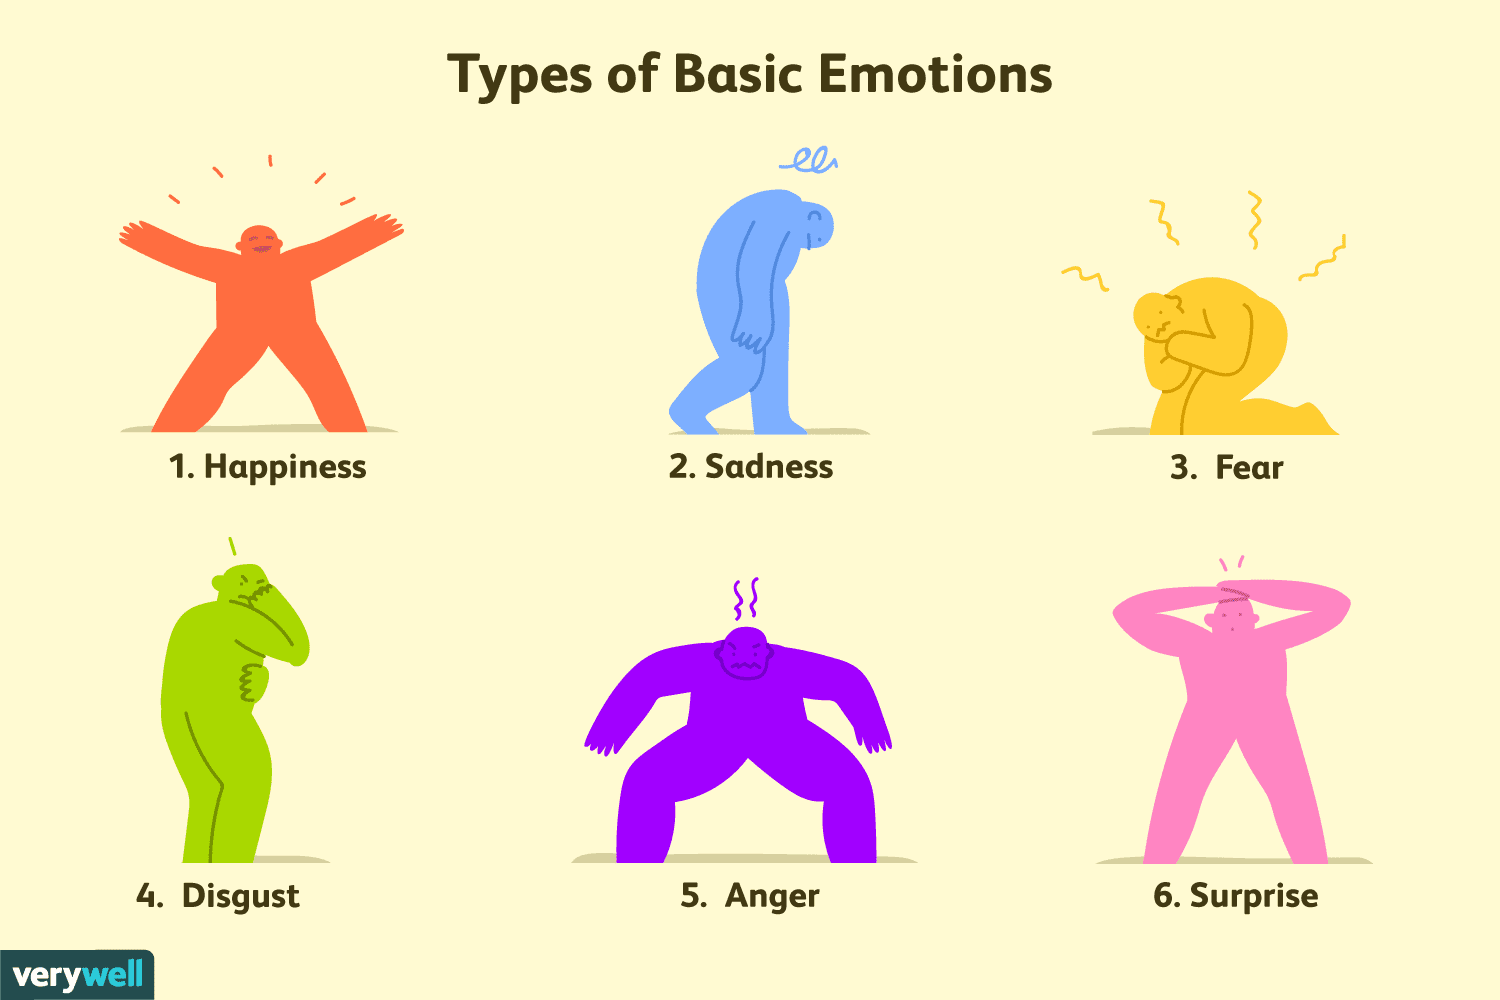 The six basic types of emotions